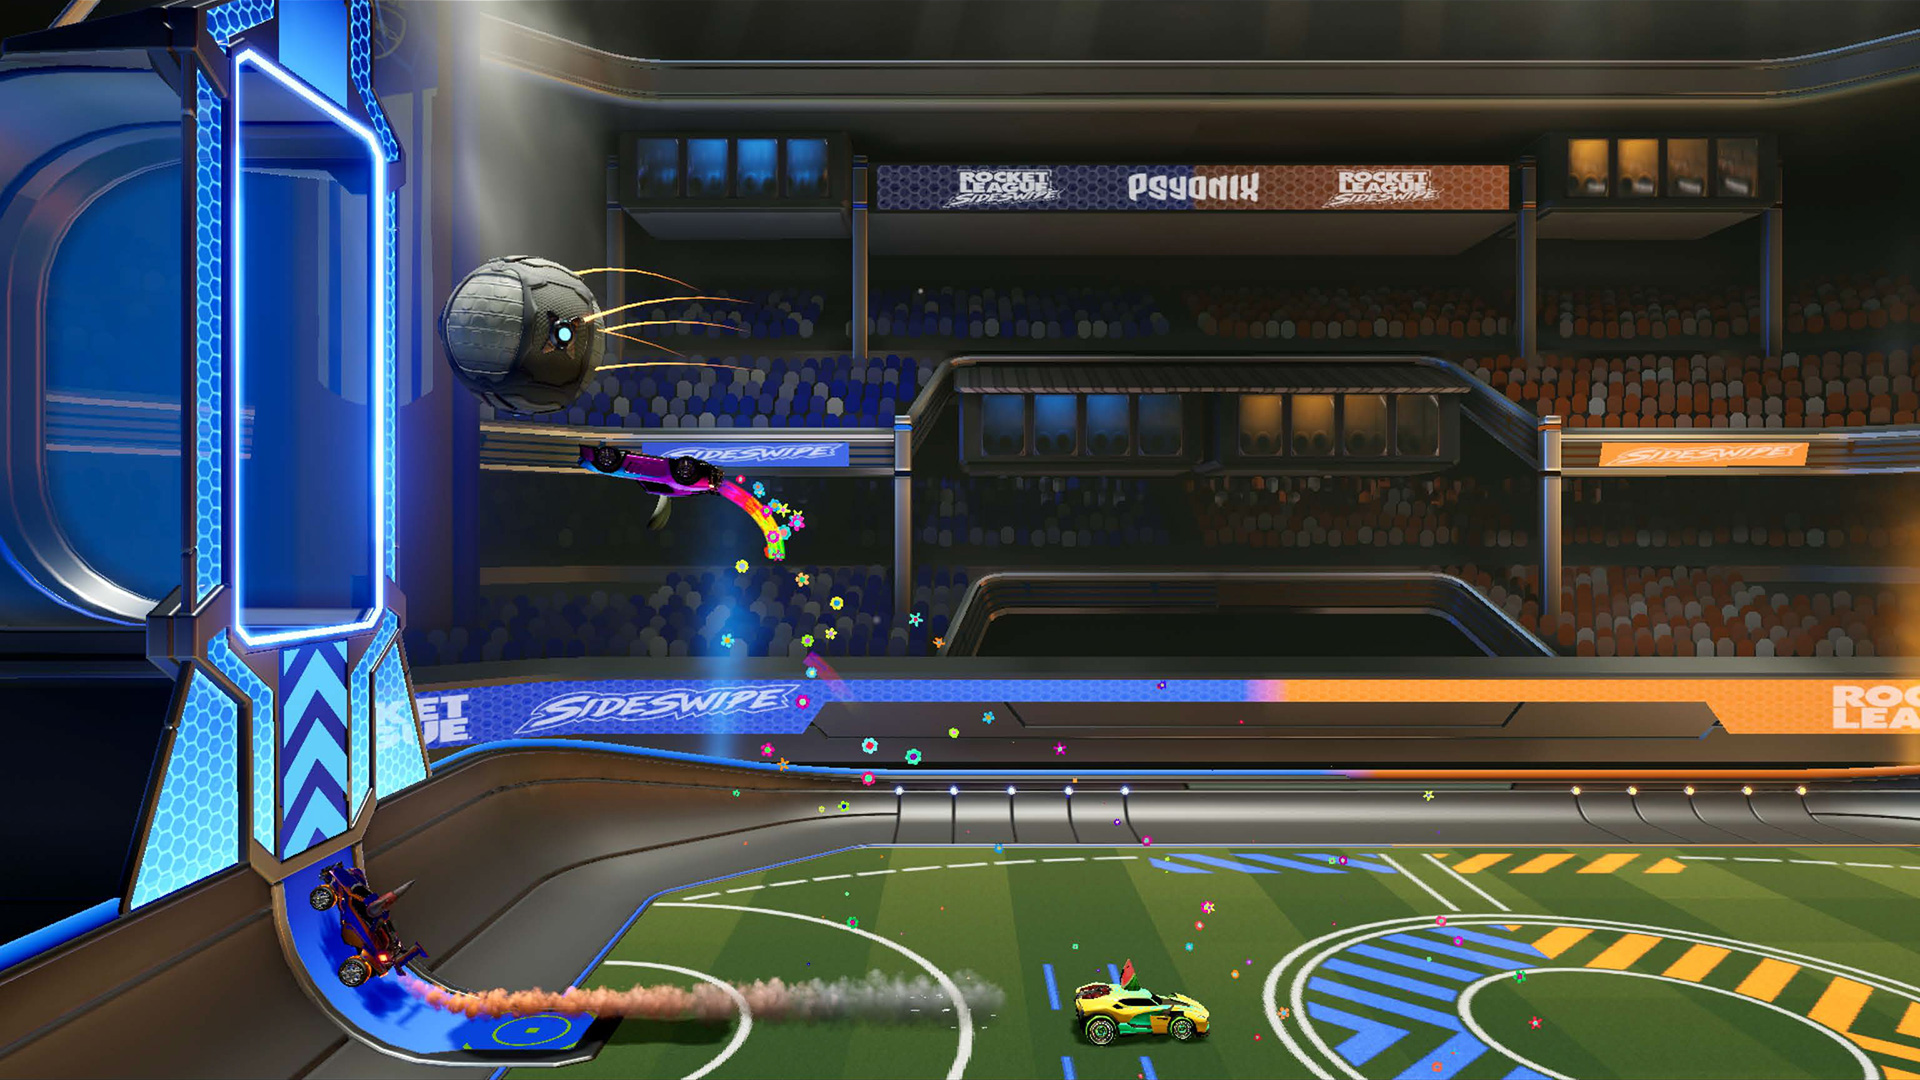 Rocket League Sideswipe is a free mobile spin-off for iOS and Android screenshot